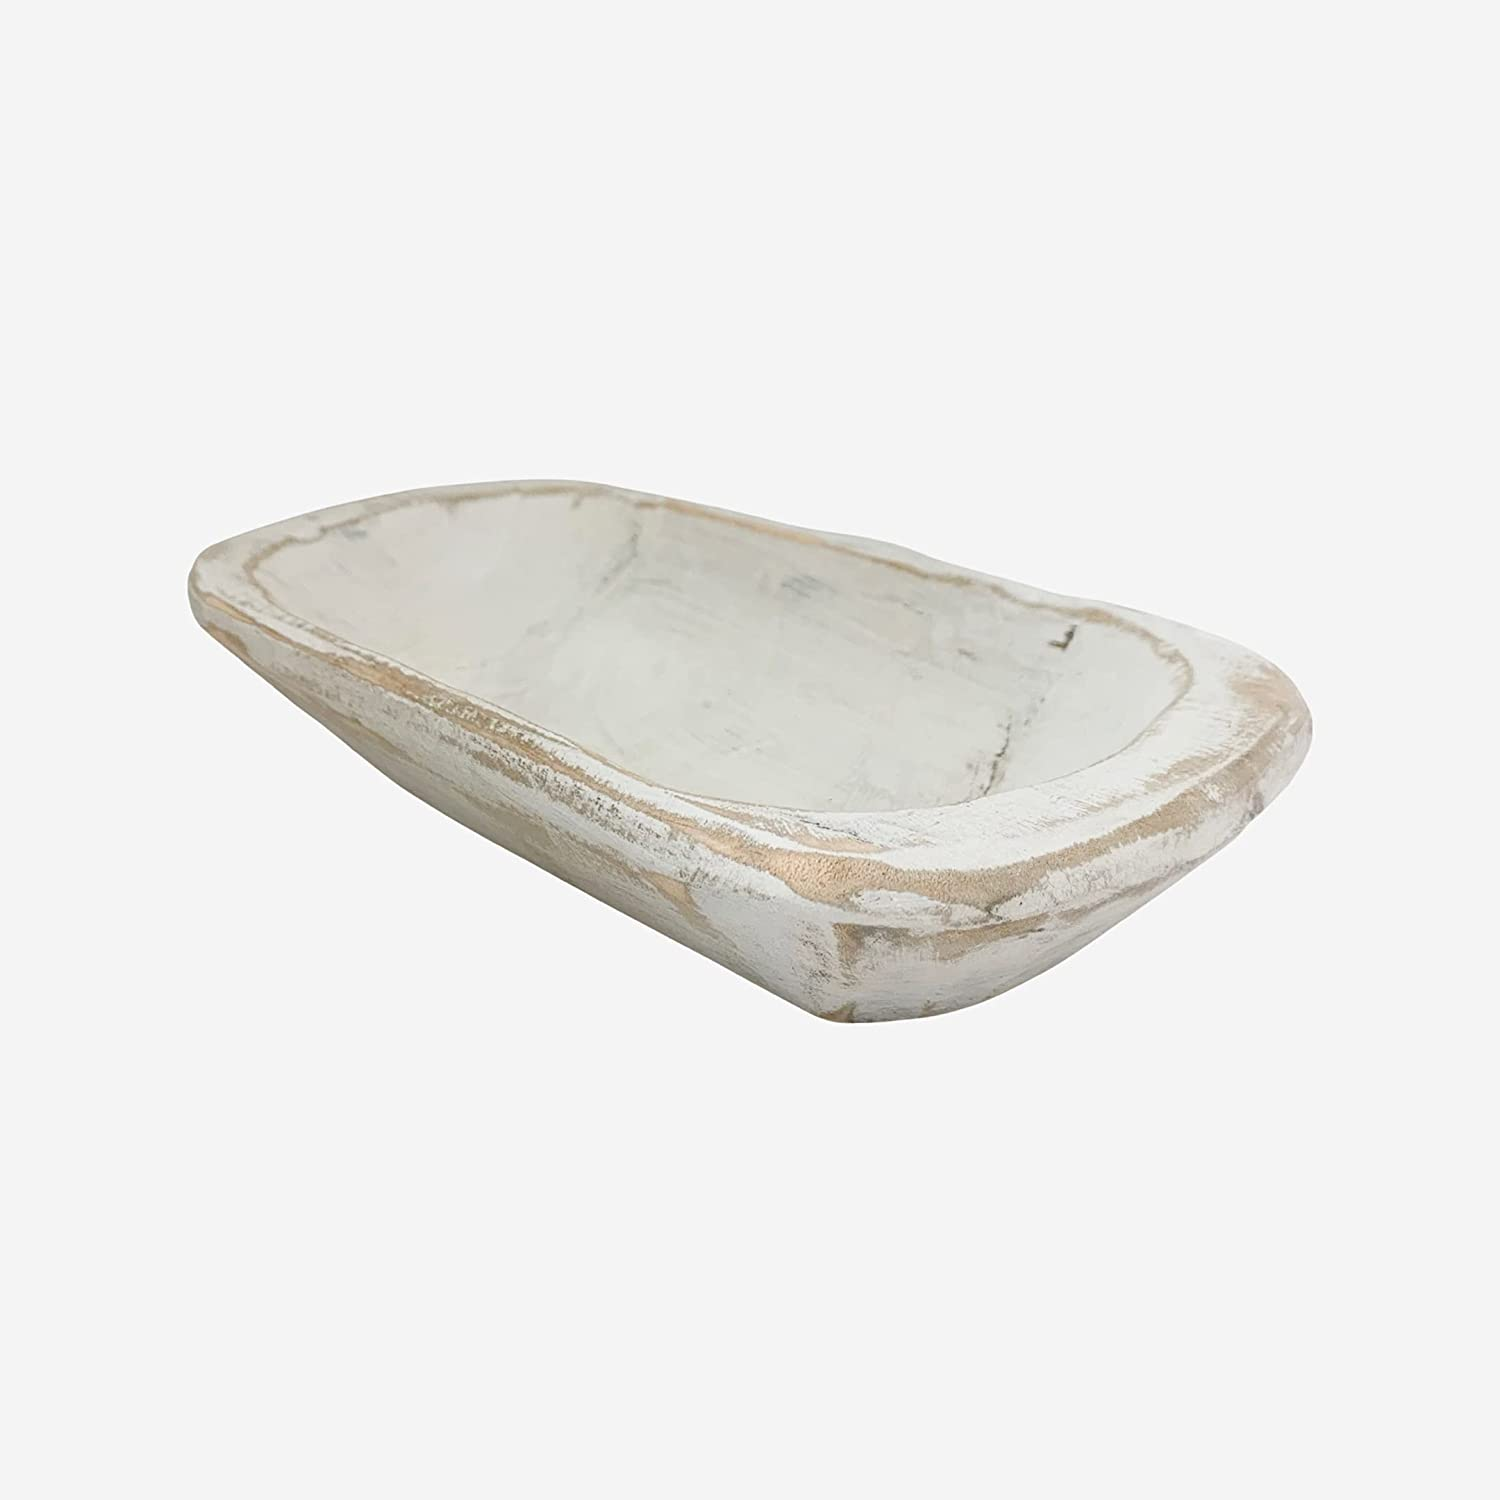 Dough Bowl, White Wood Bowl for Decoration. Perfect for Rustic, Farmhouse Decor. These Hand Carved, Wooden Bowls may be used for Wax Filling, Decorative Centerpiece or Display